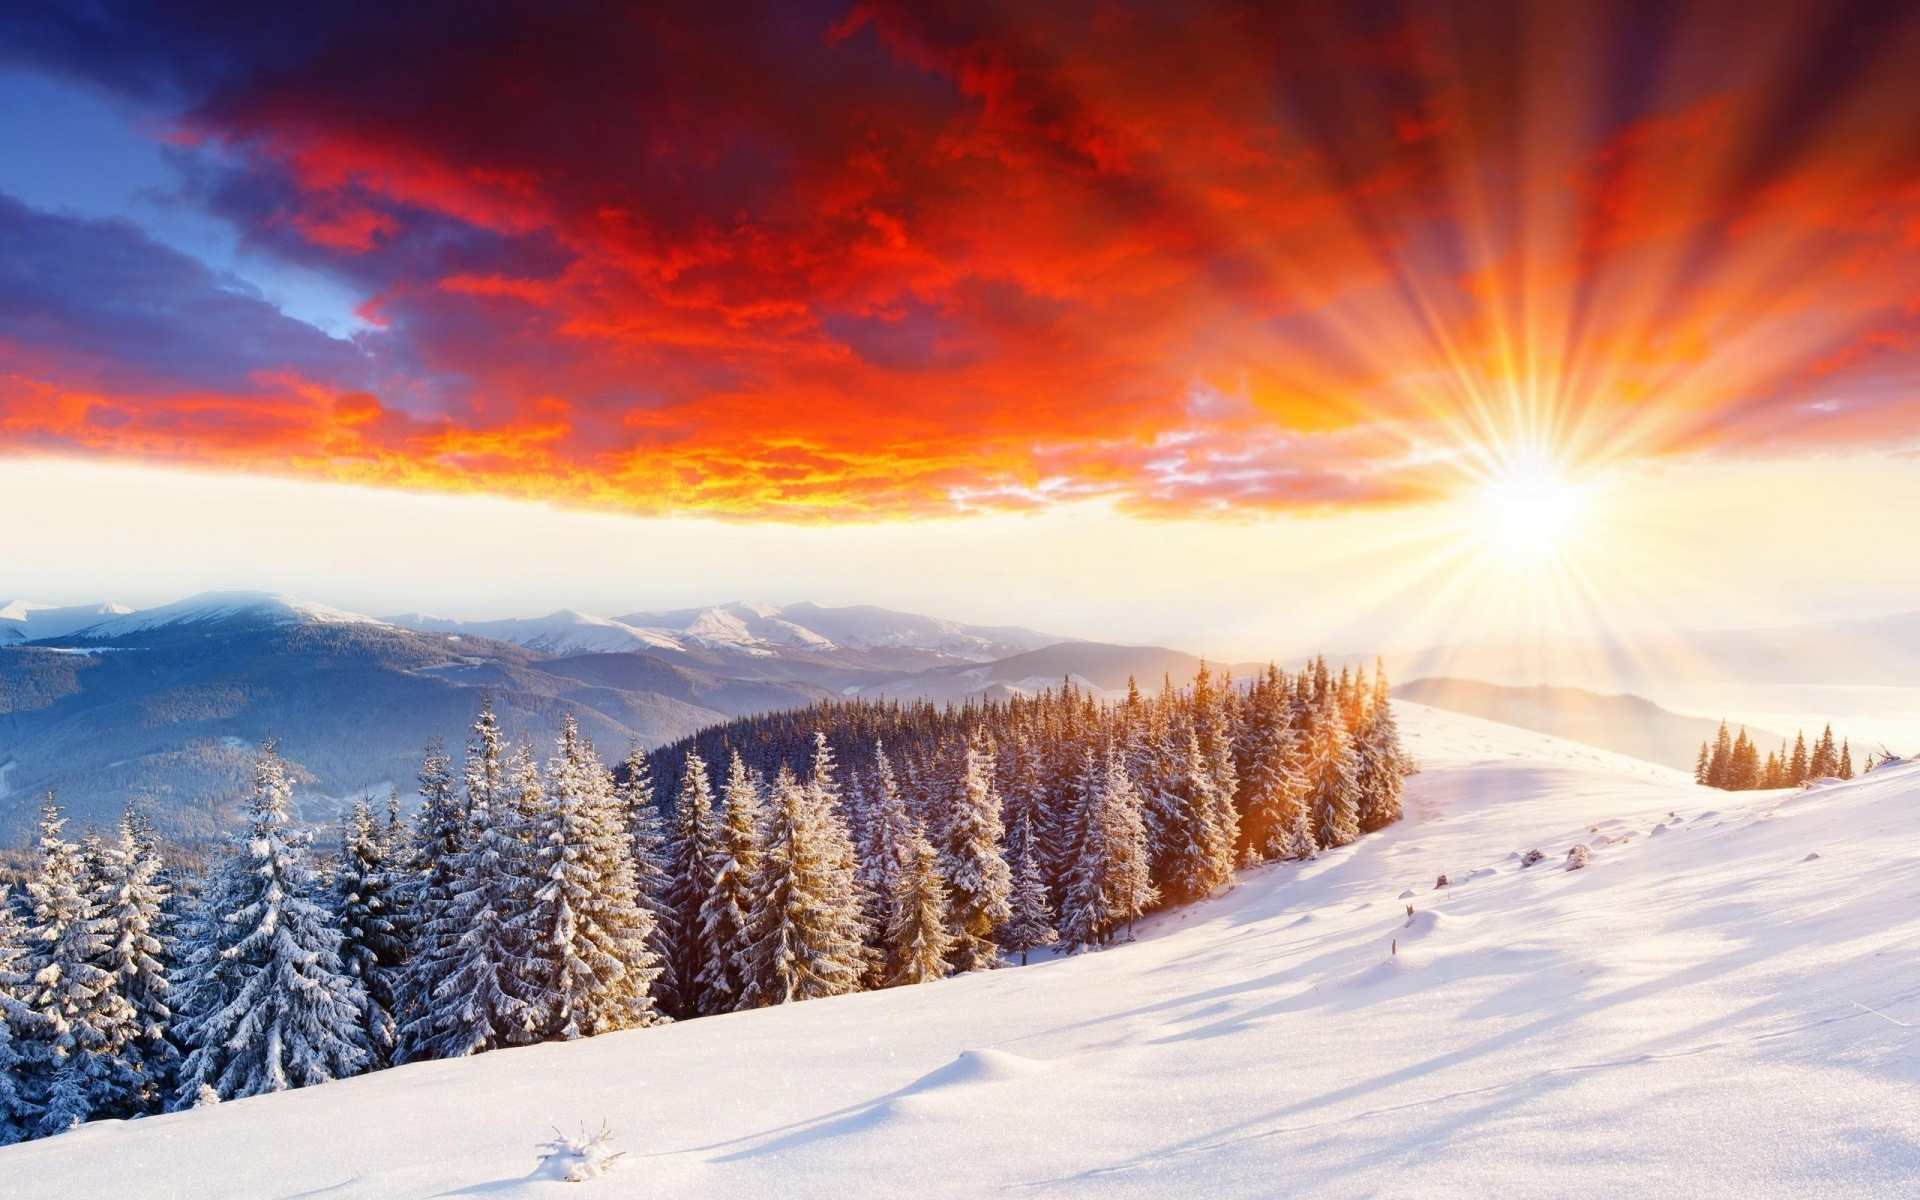 Wonderful Sunset On Snow Mountain Hill